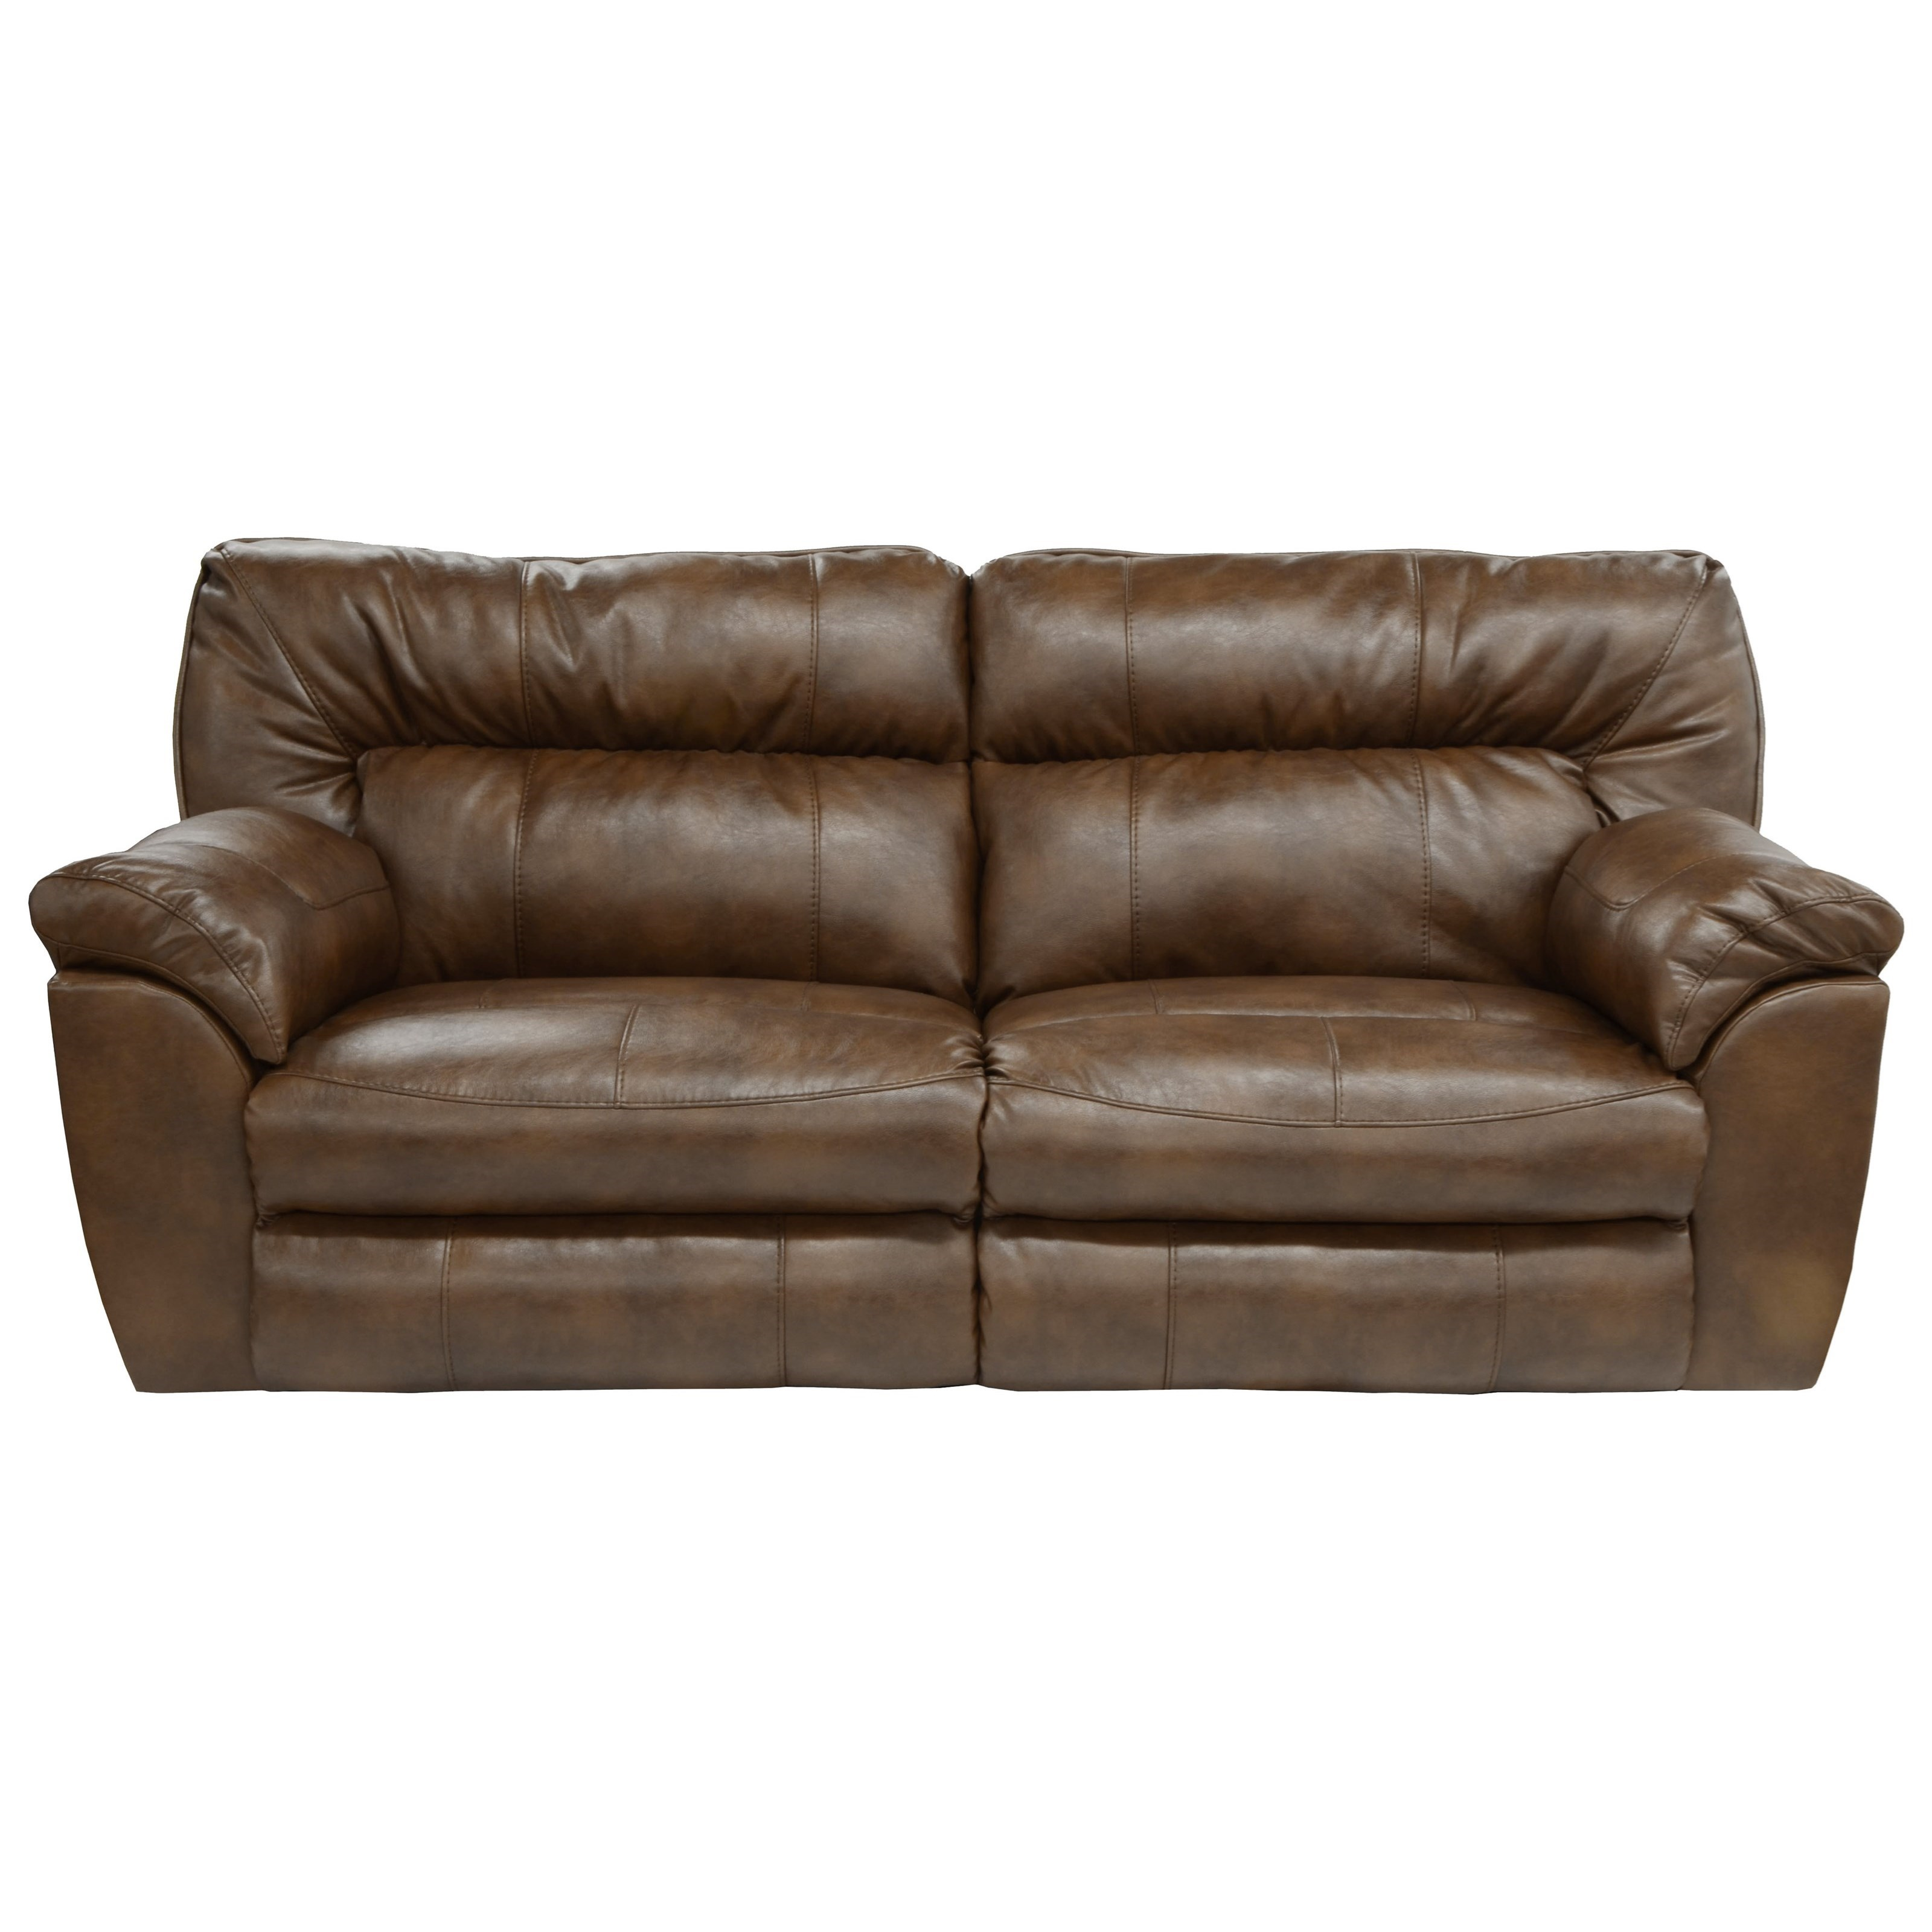 Catnapper Nolan 4041 Extra Wide Reclining Sofa Household Furniture Reclining Sofas